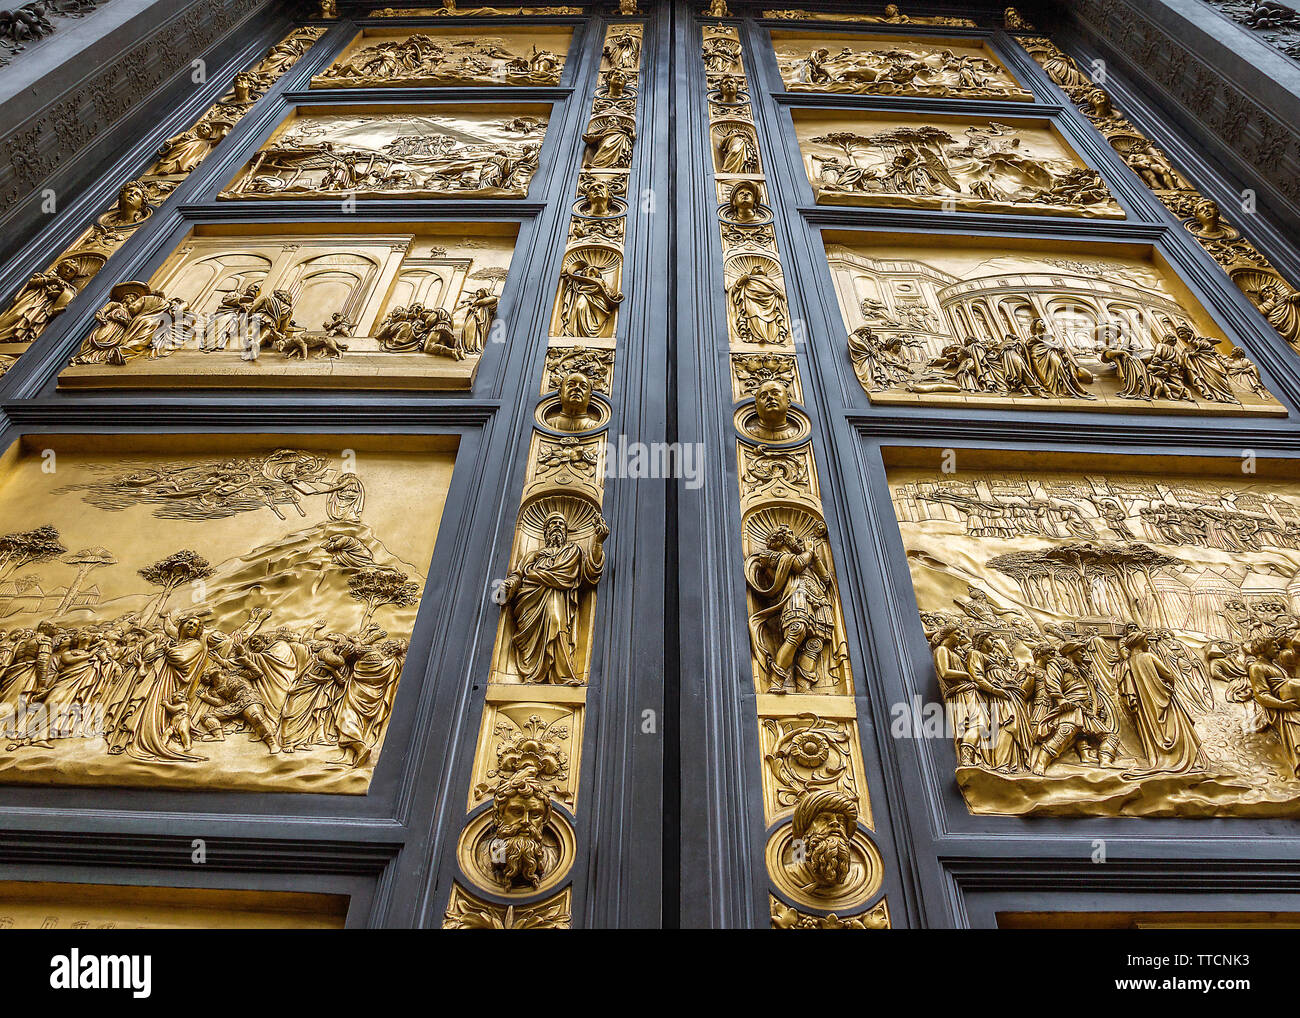 Italy, Florence. Bronze, gilt-coated doors of the Baptistery of San Giovanni - 'The Gates of Paradise', as the great Michelangelo called them. - Stock Image